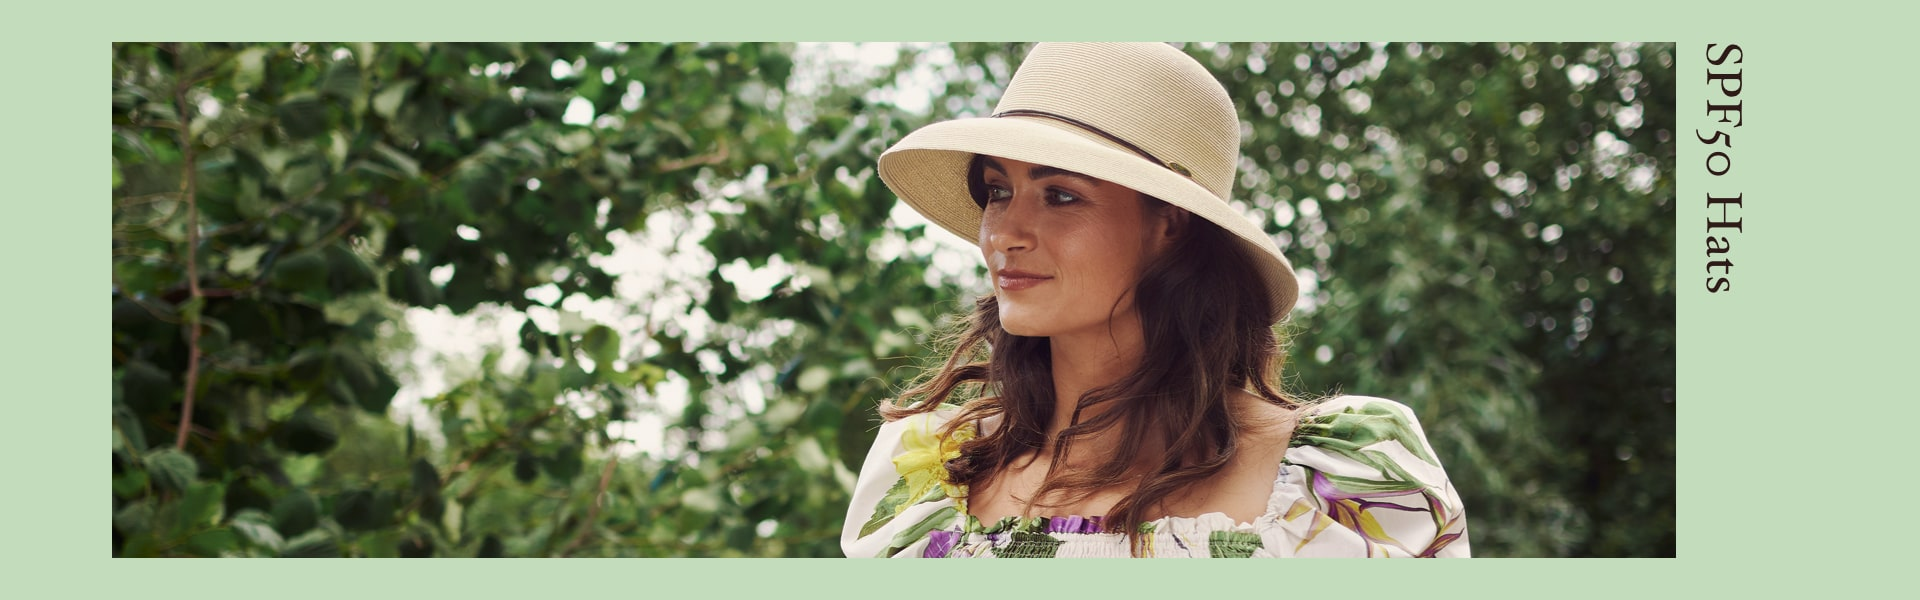 Bronte SPF50+ sun protection hats SS21